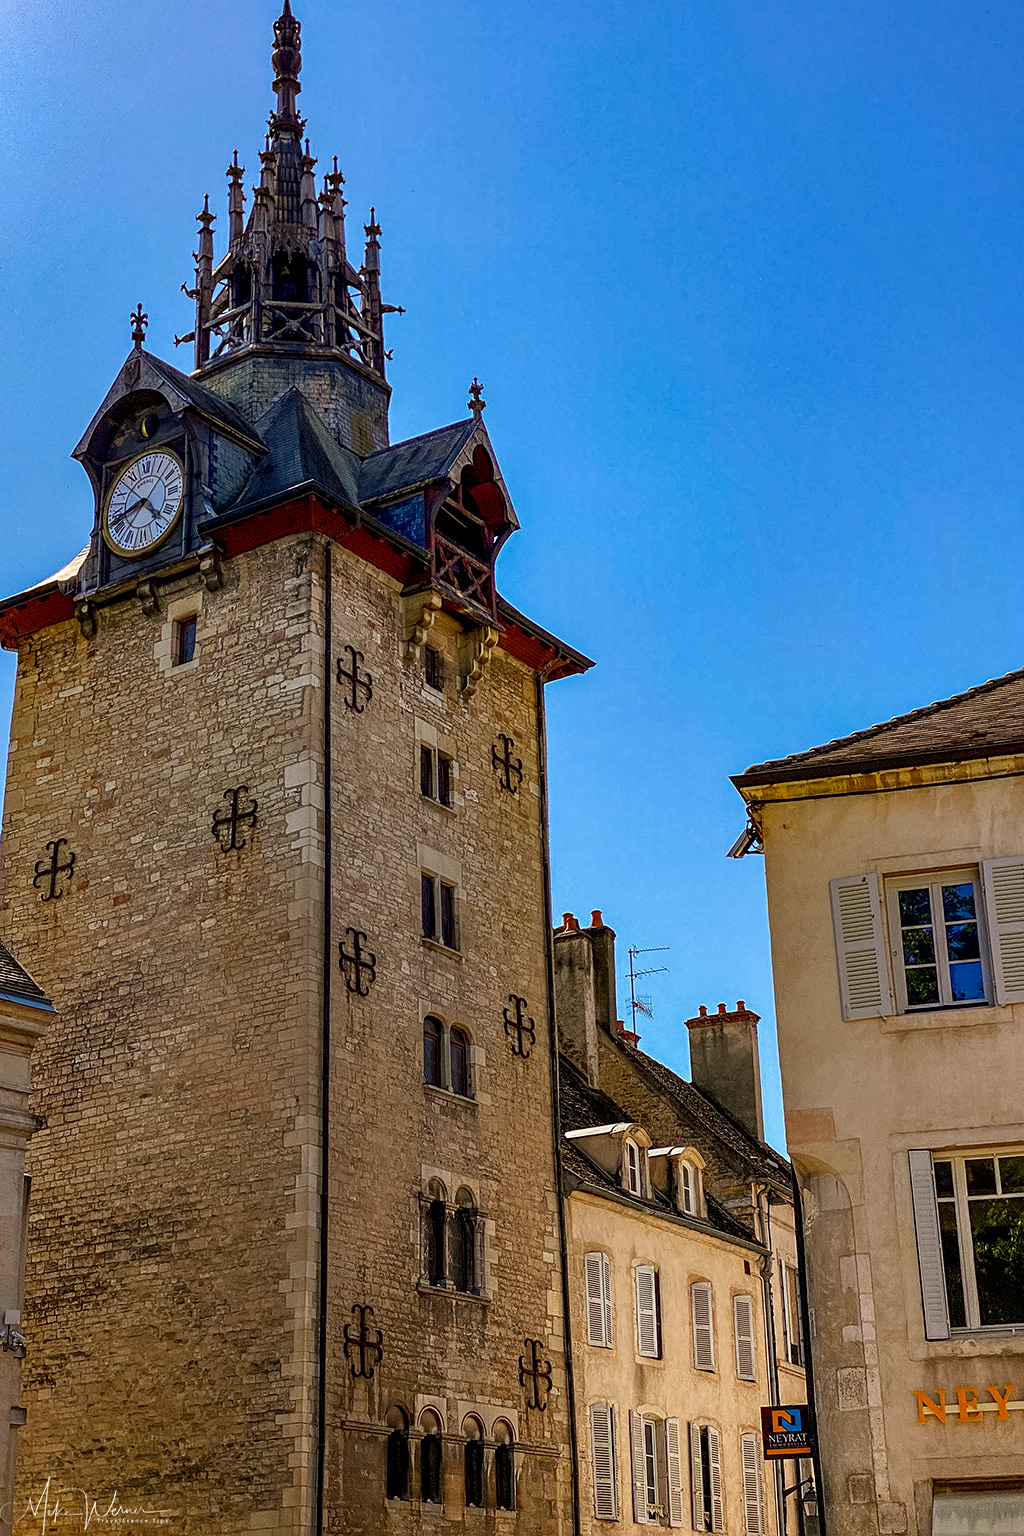 Bell Tower of Beaune